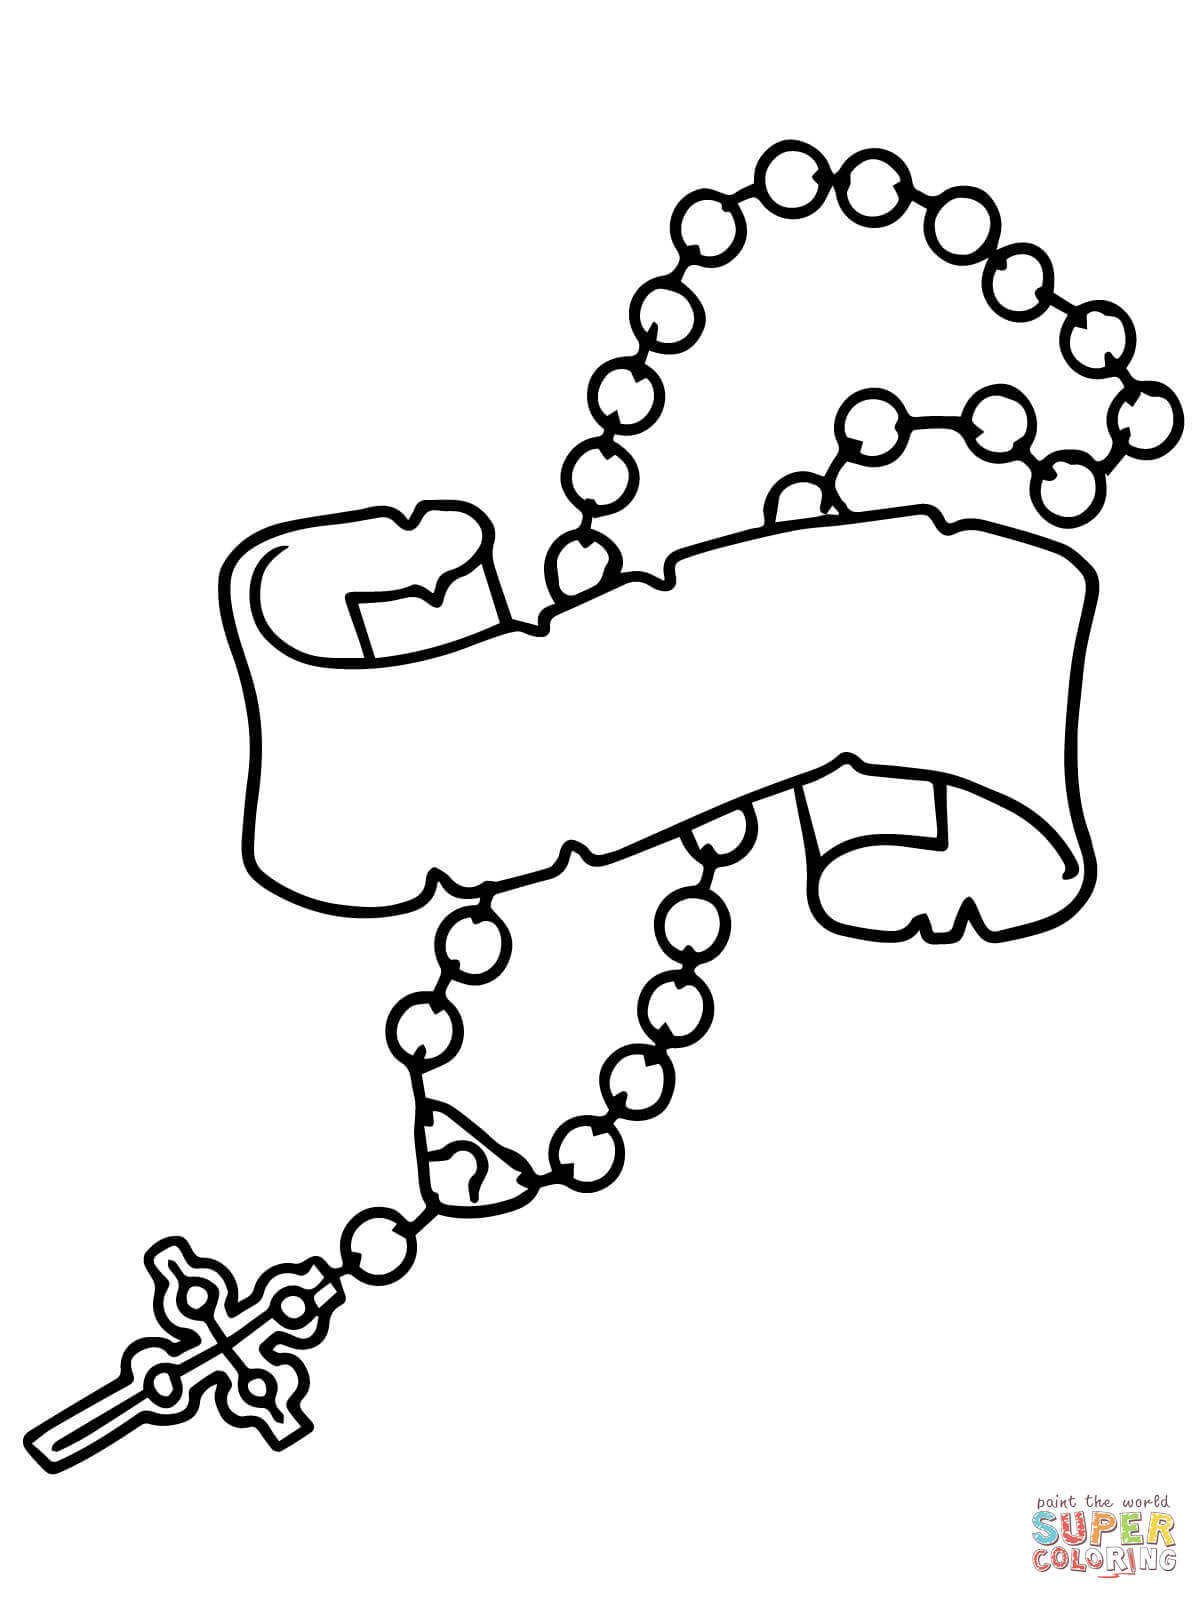 childrens rosary coloring pages | Rosary Coloring Page Printable - Coloring Home